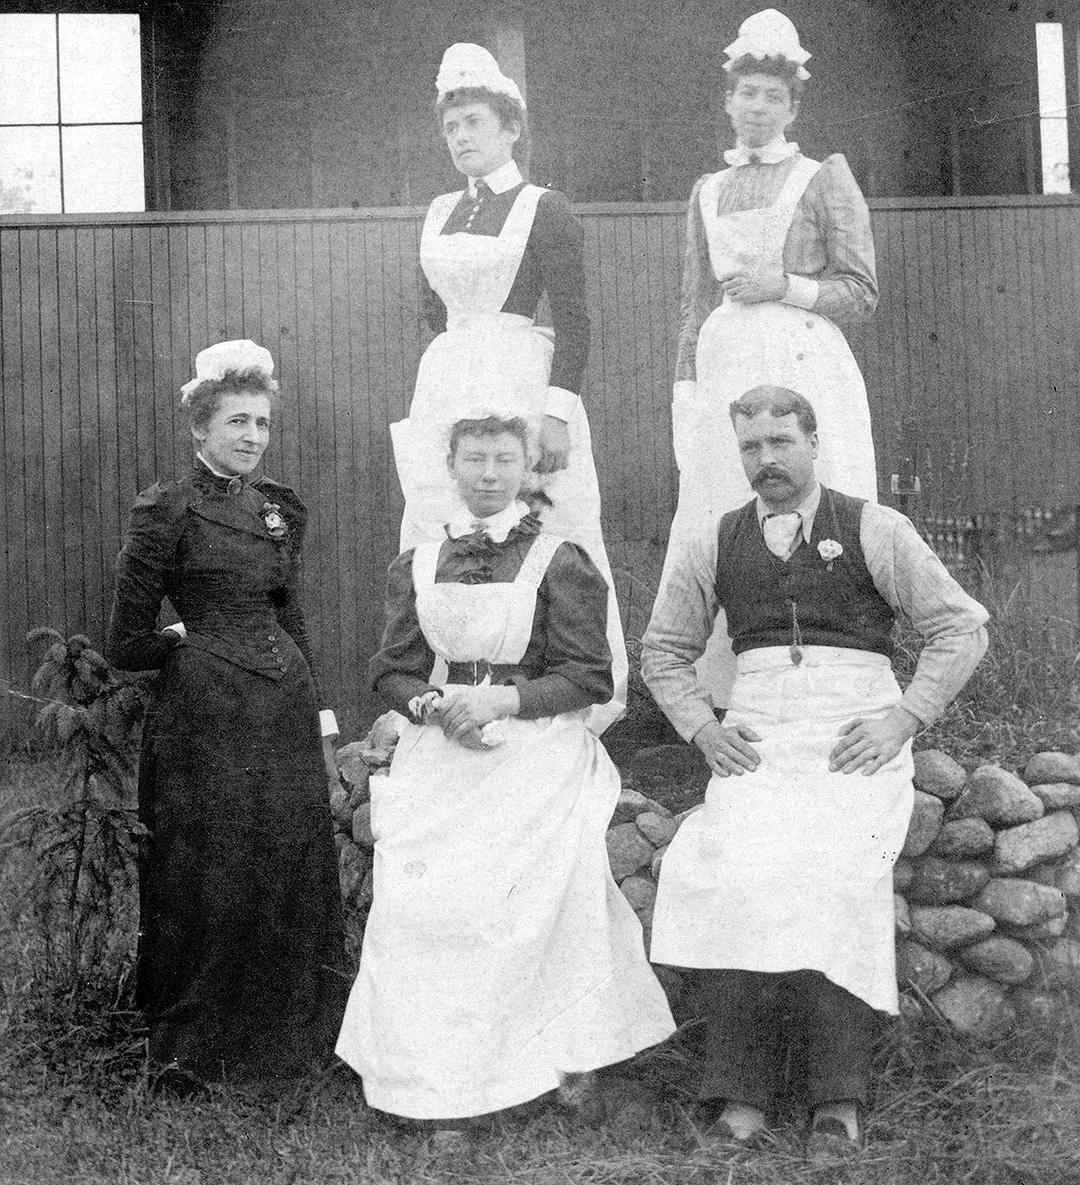 Hospital medical staff appointed – September 17, 1888